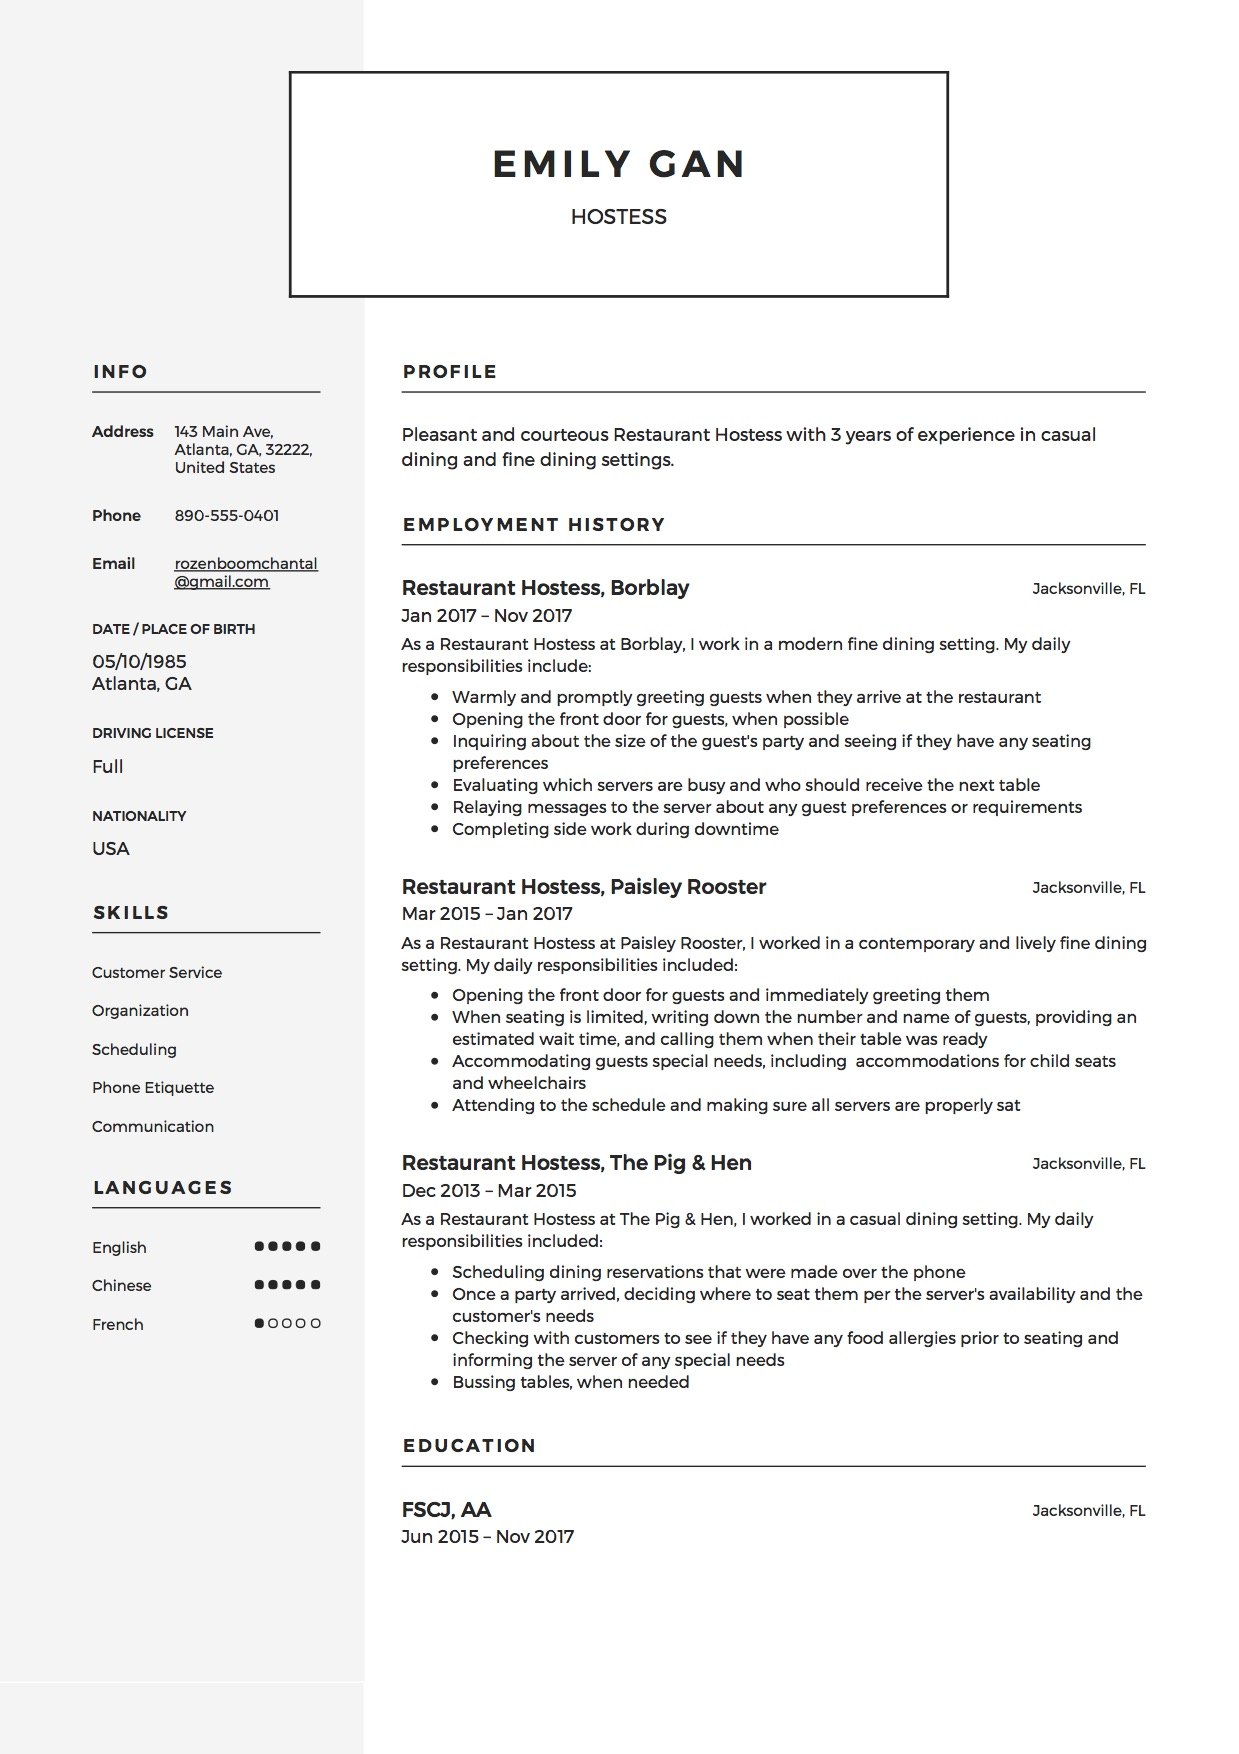 restaurant hostess resume sample  u0026 guide  u2013 resumeviking com